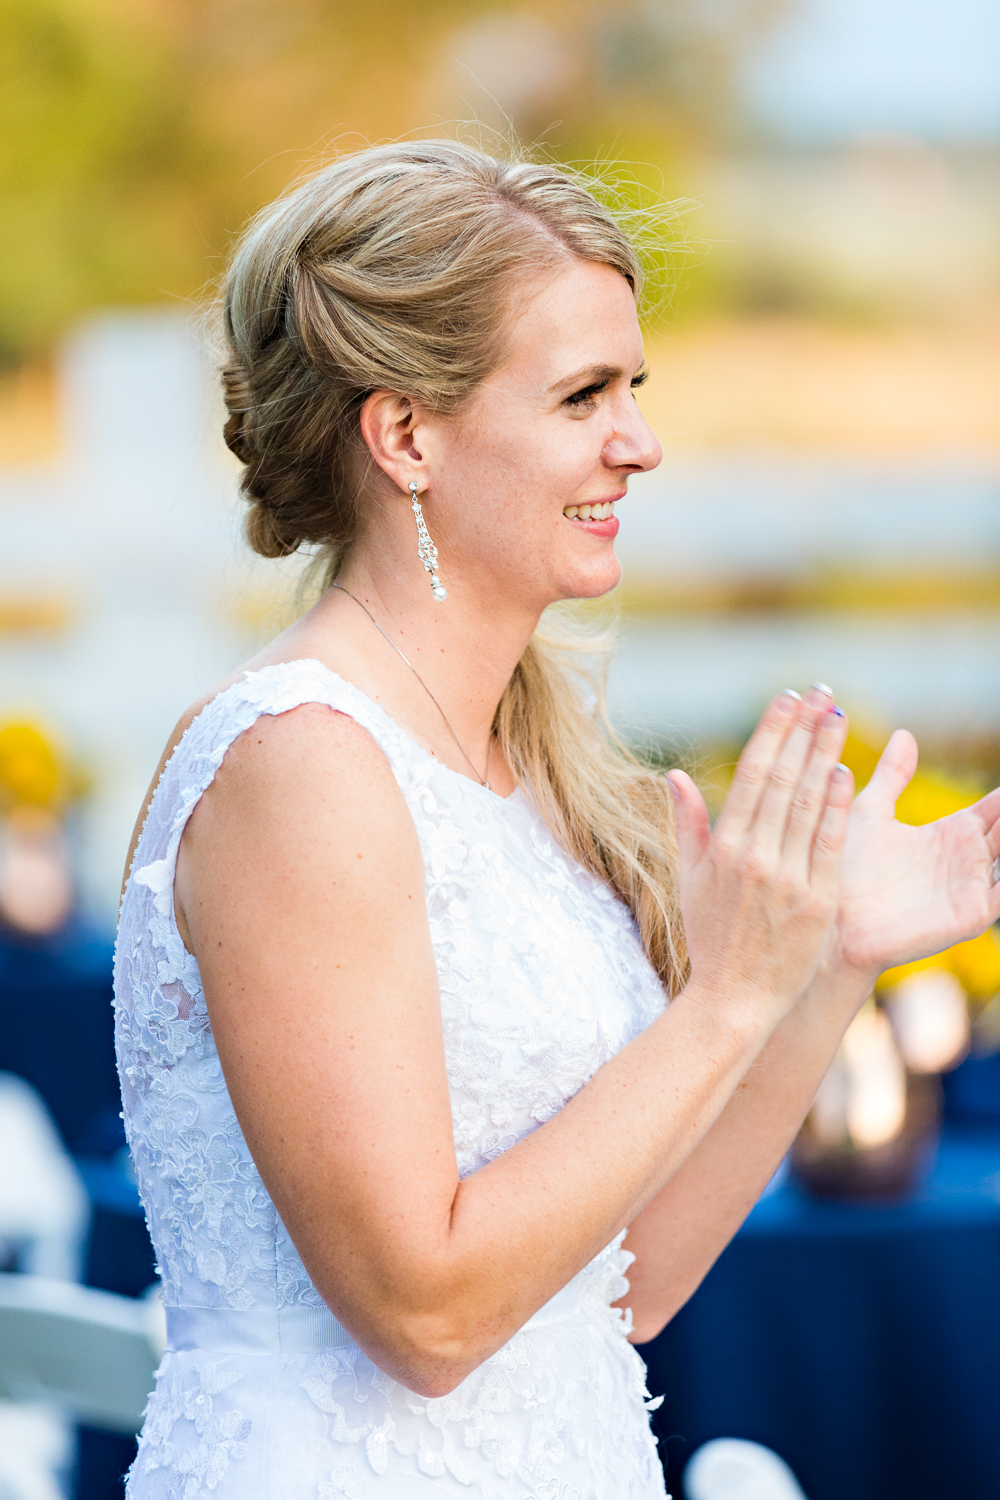 bozeman-montana-wedding-roys-barn-bride-clapping.jpg